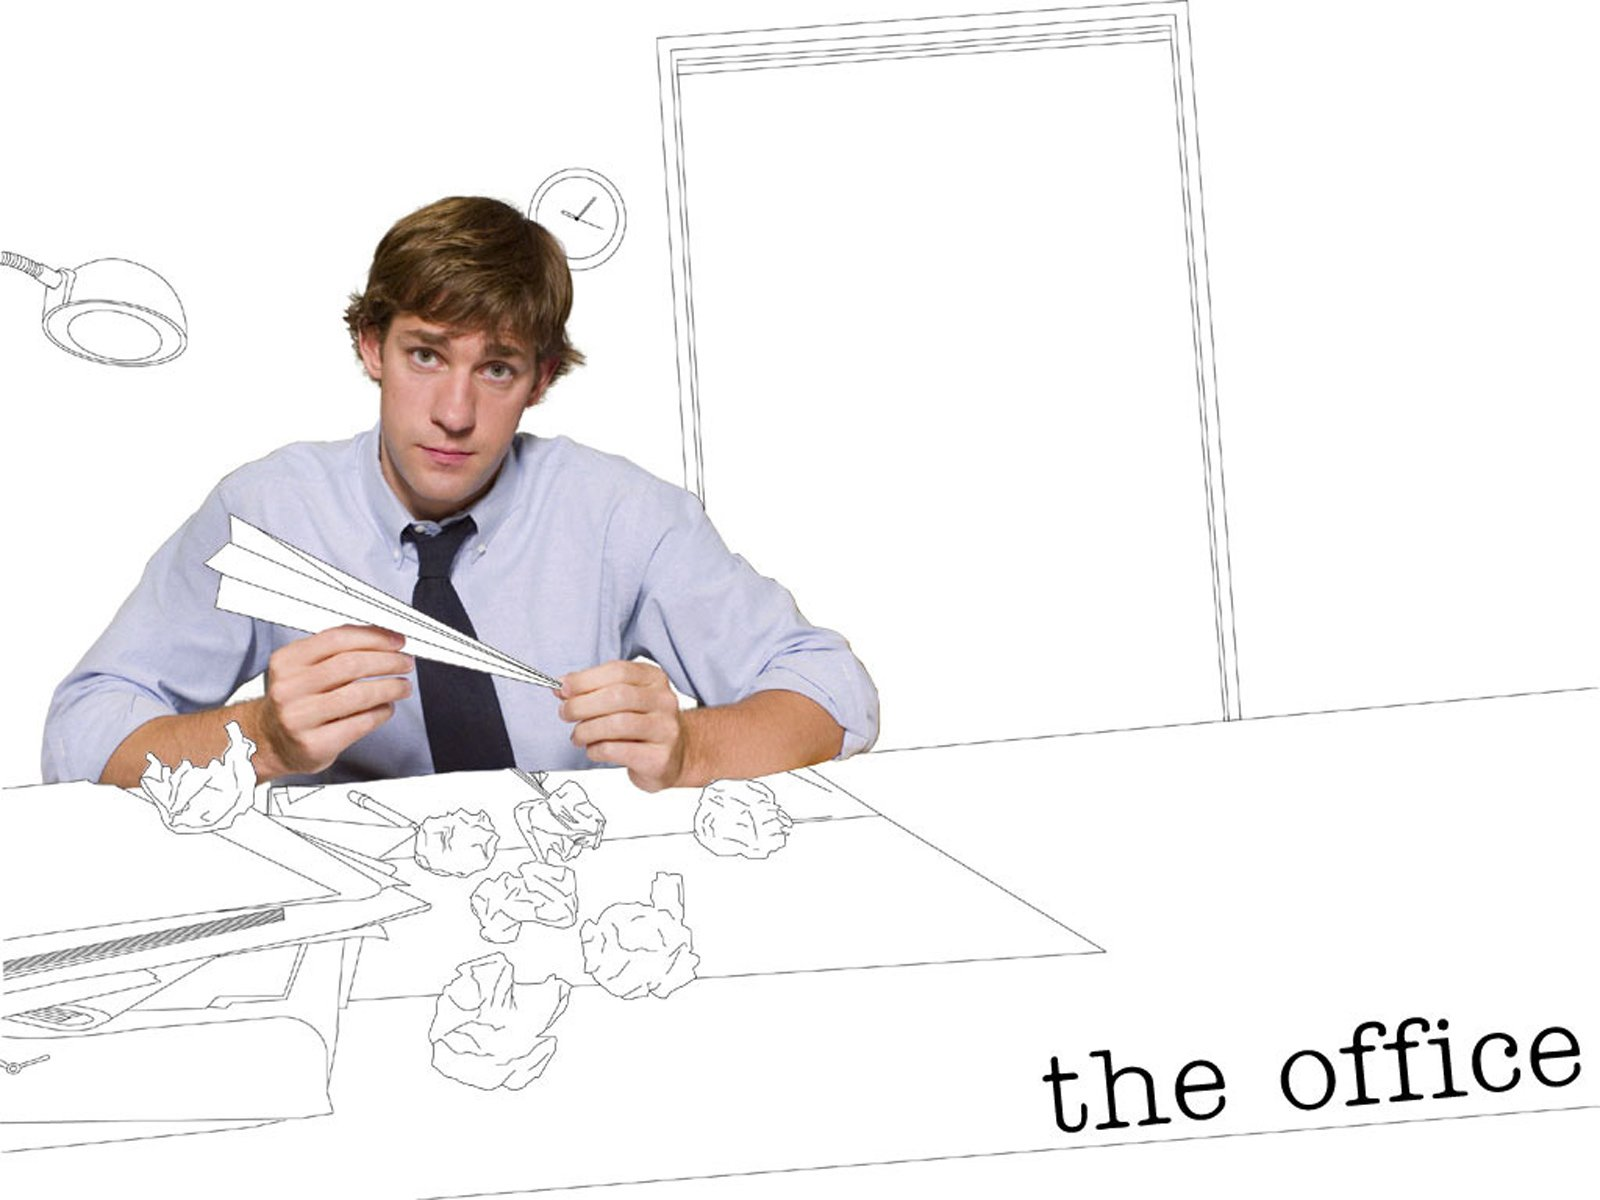 The Office (US) Wallpaper and Background Image   1600x1200 ...